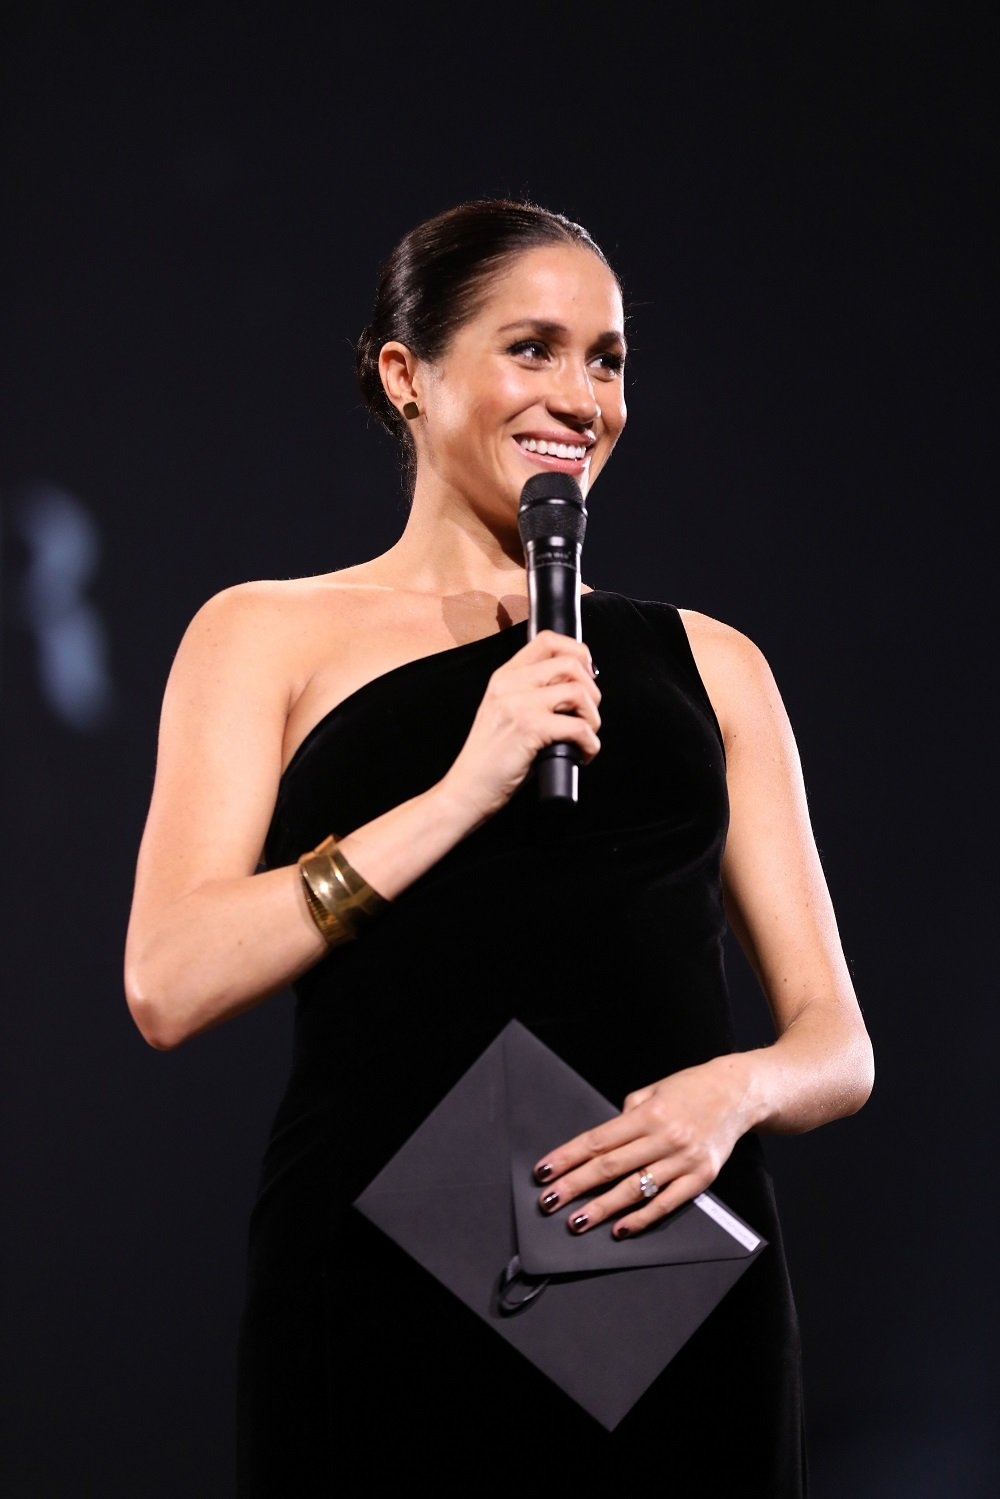 Duchess Meghan on stage during The Fashion Awards In Partnership With Swarovski on December 10, 2018, in London, England | Photo: Tristan Fewings/BFC/Getty Images